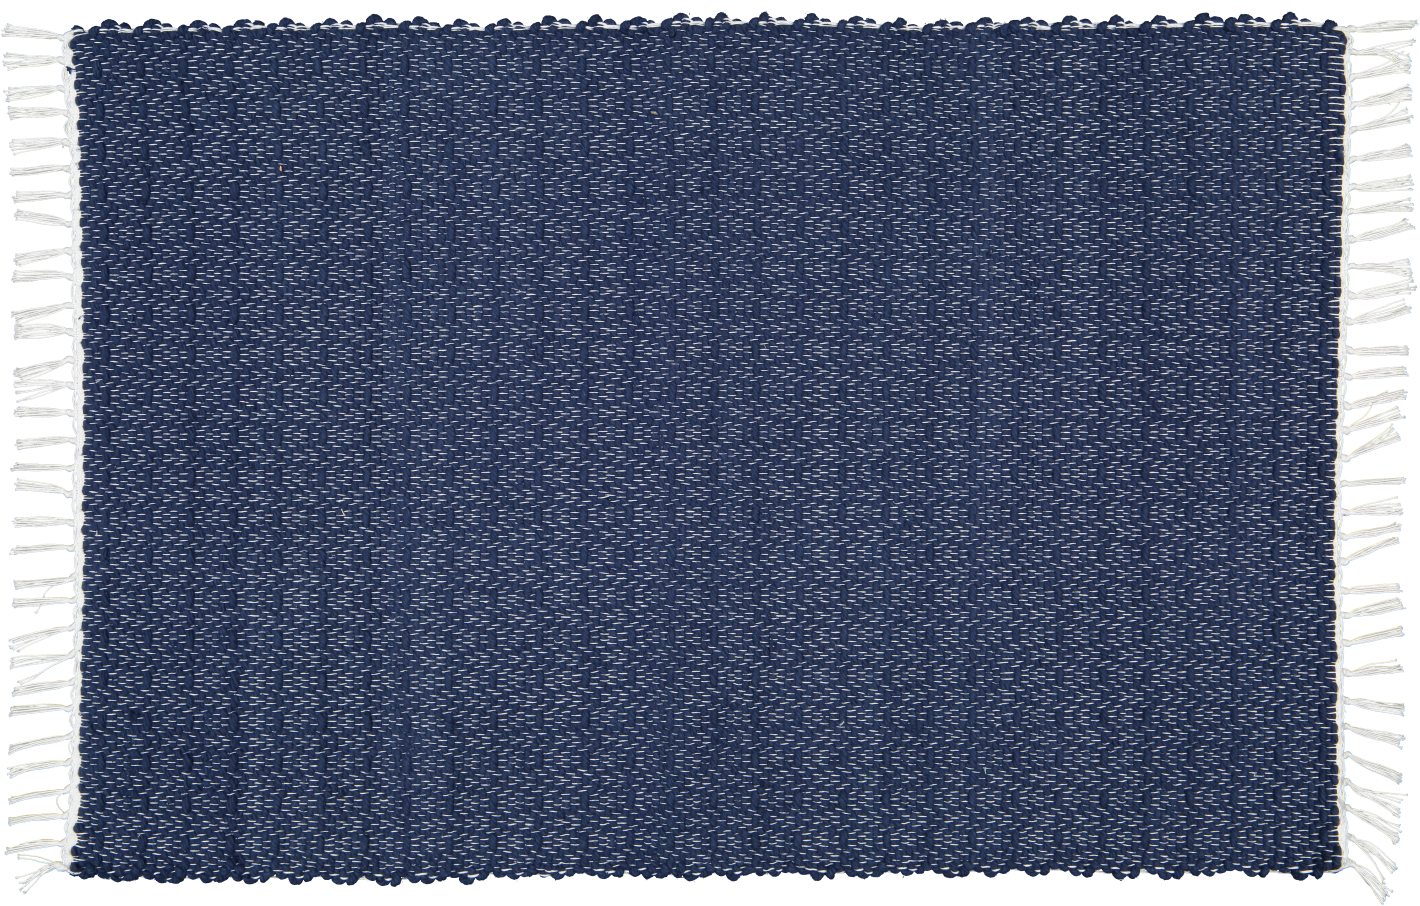 Hand woven cotton rugs in Navy woven with a Twill pattern